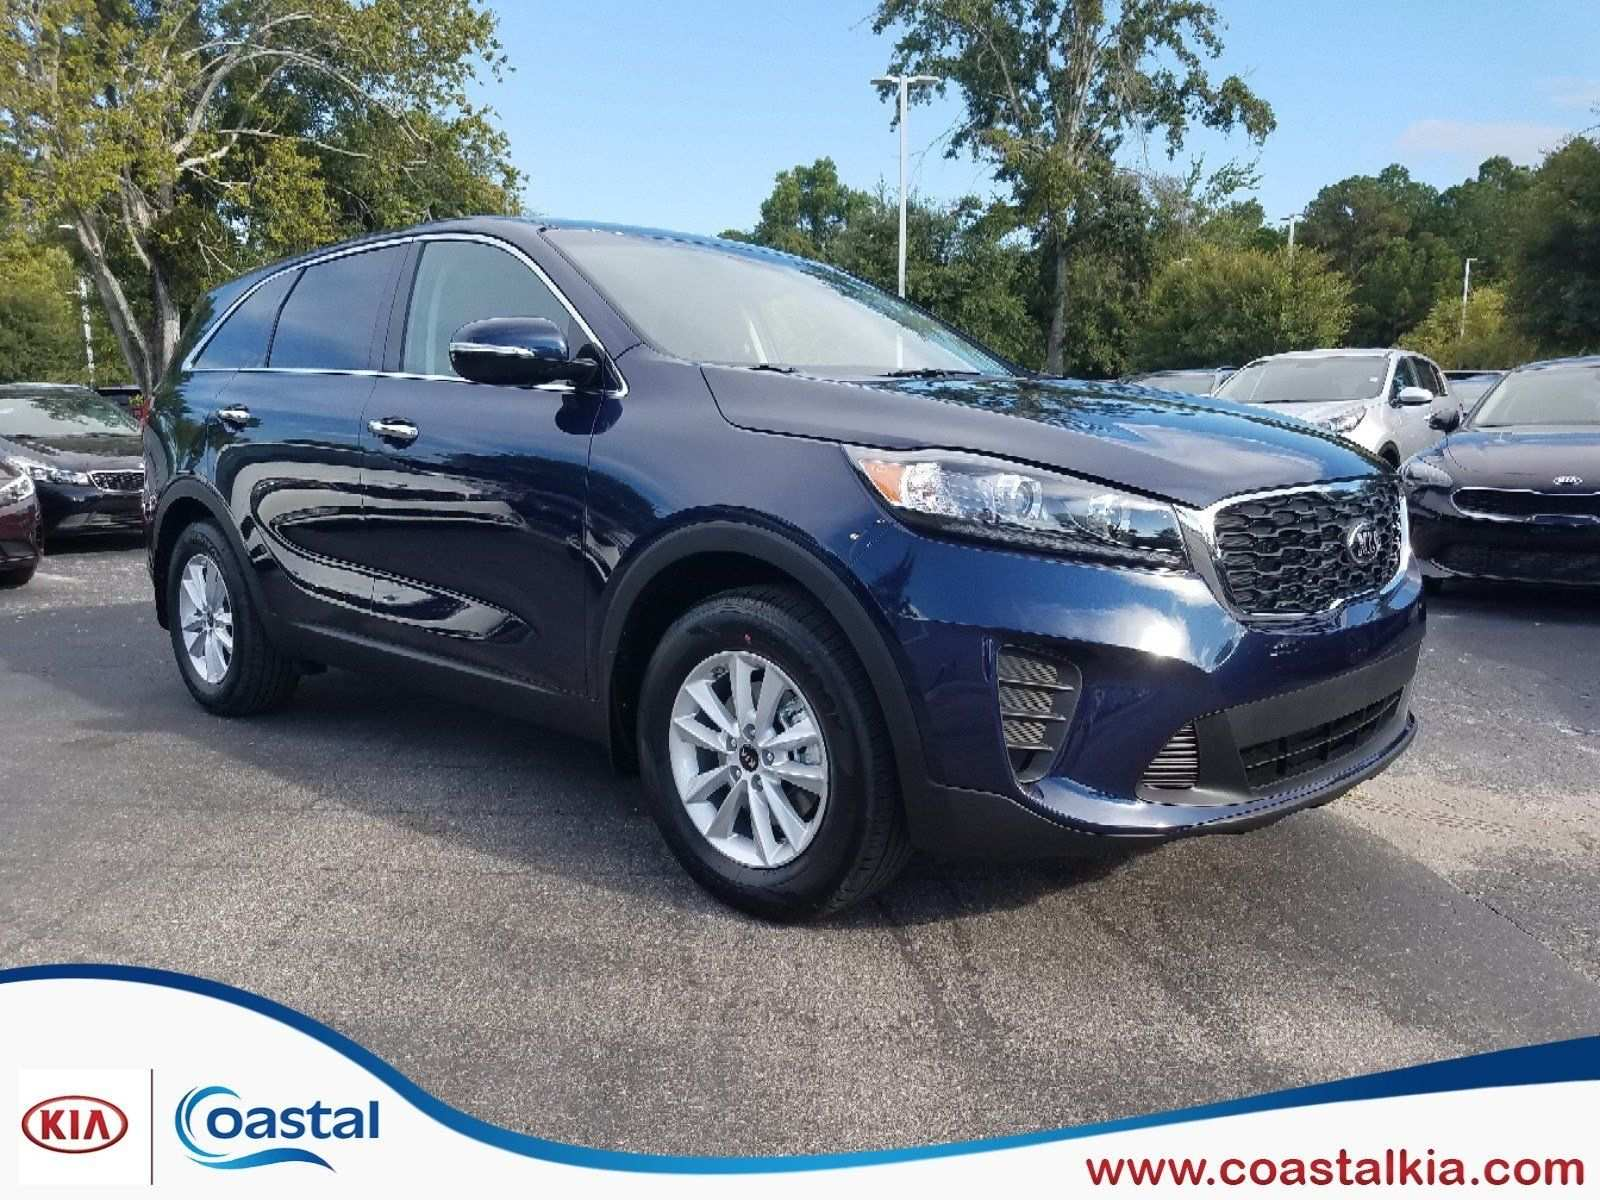 91 The Best 2019 Kia Sorento Owners Manual New Concept